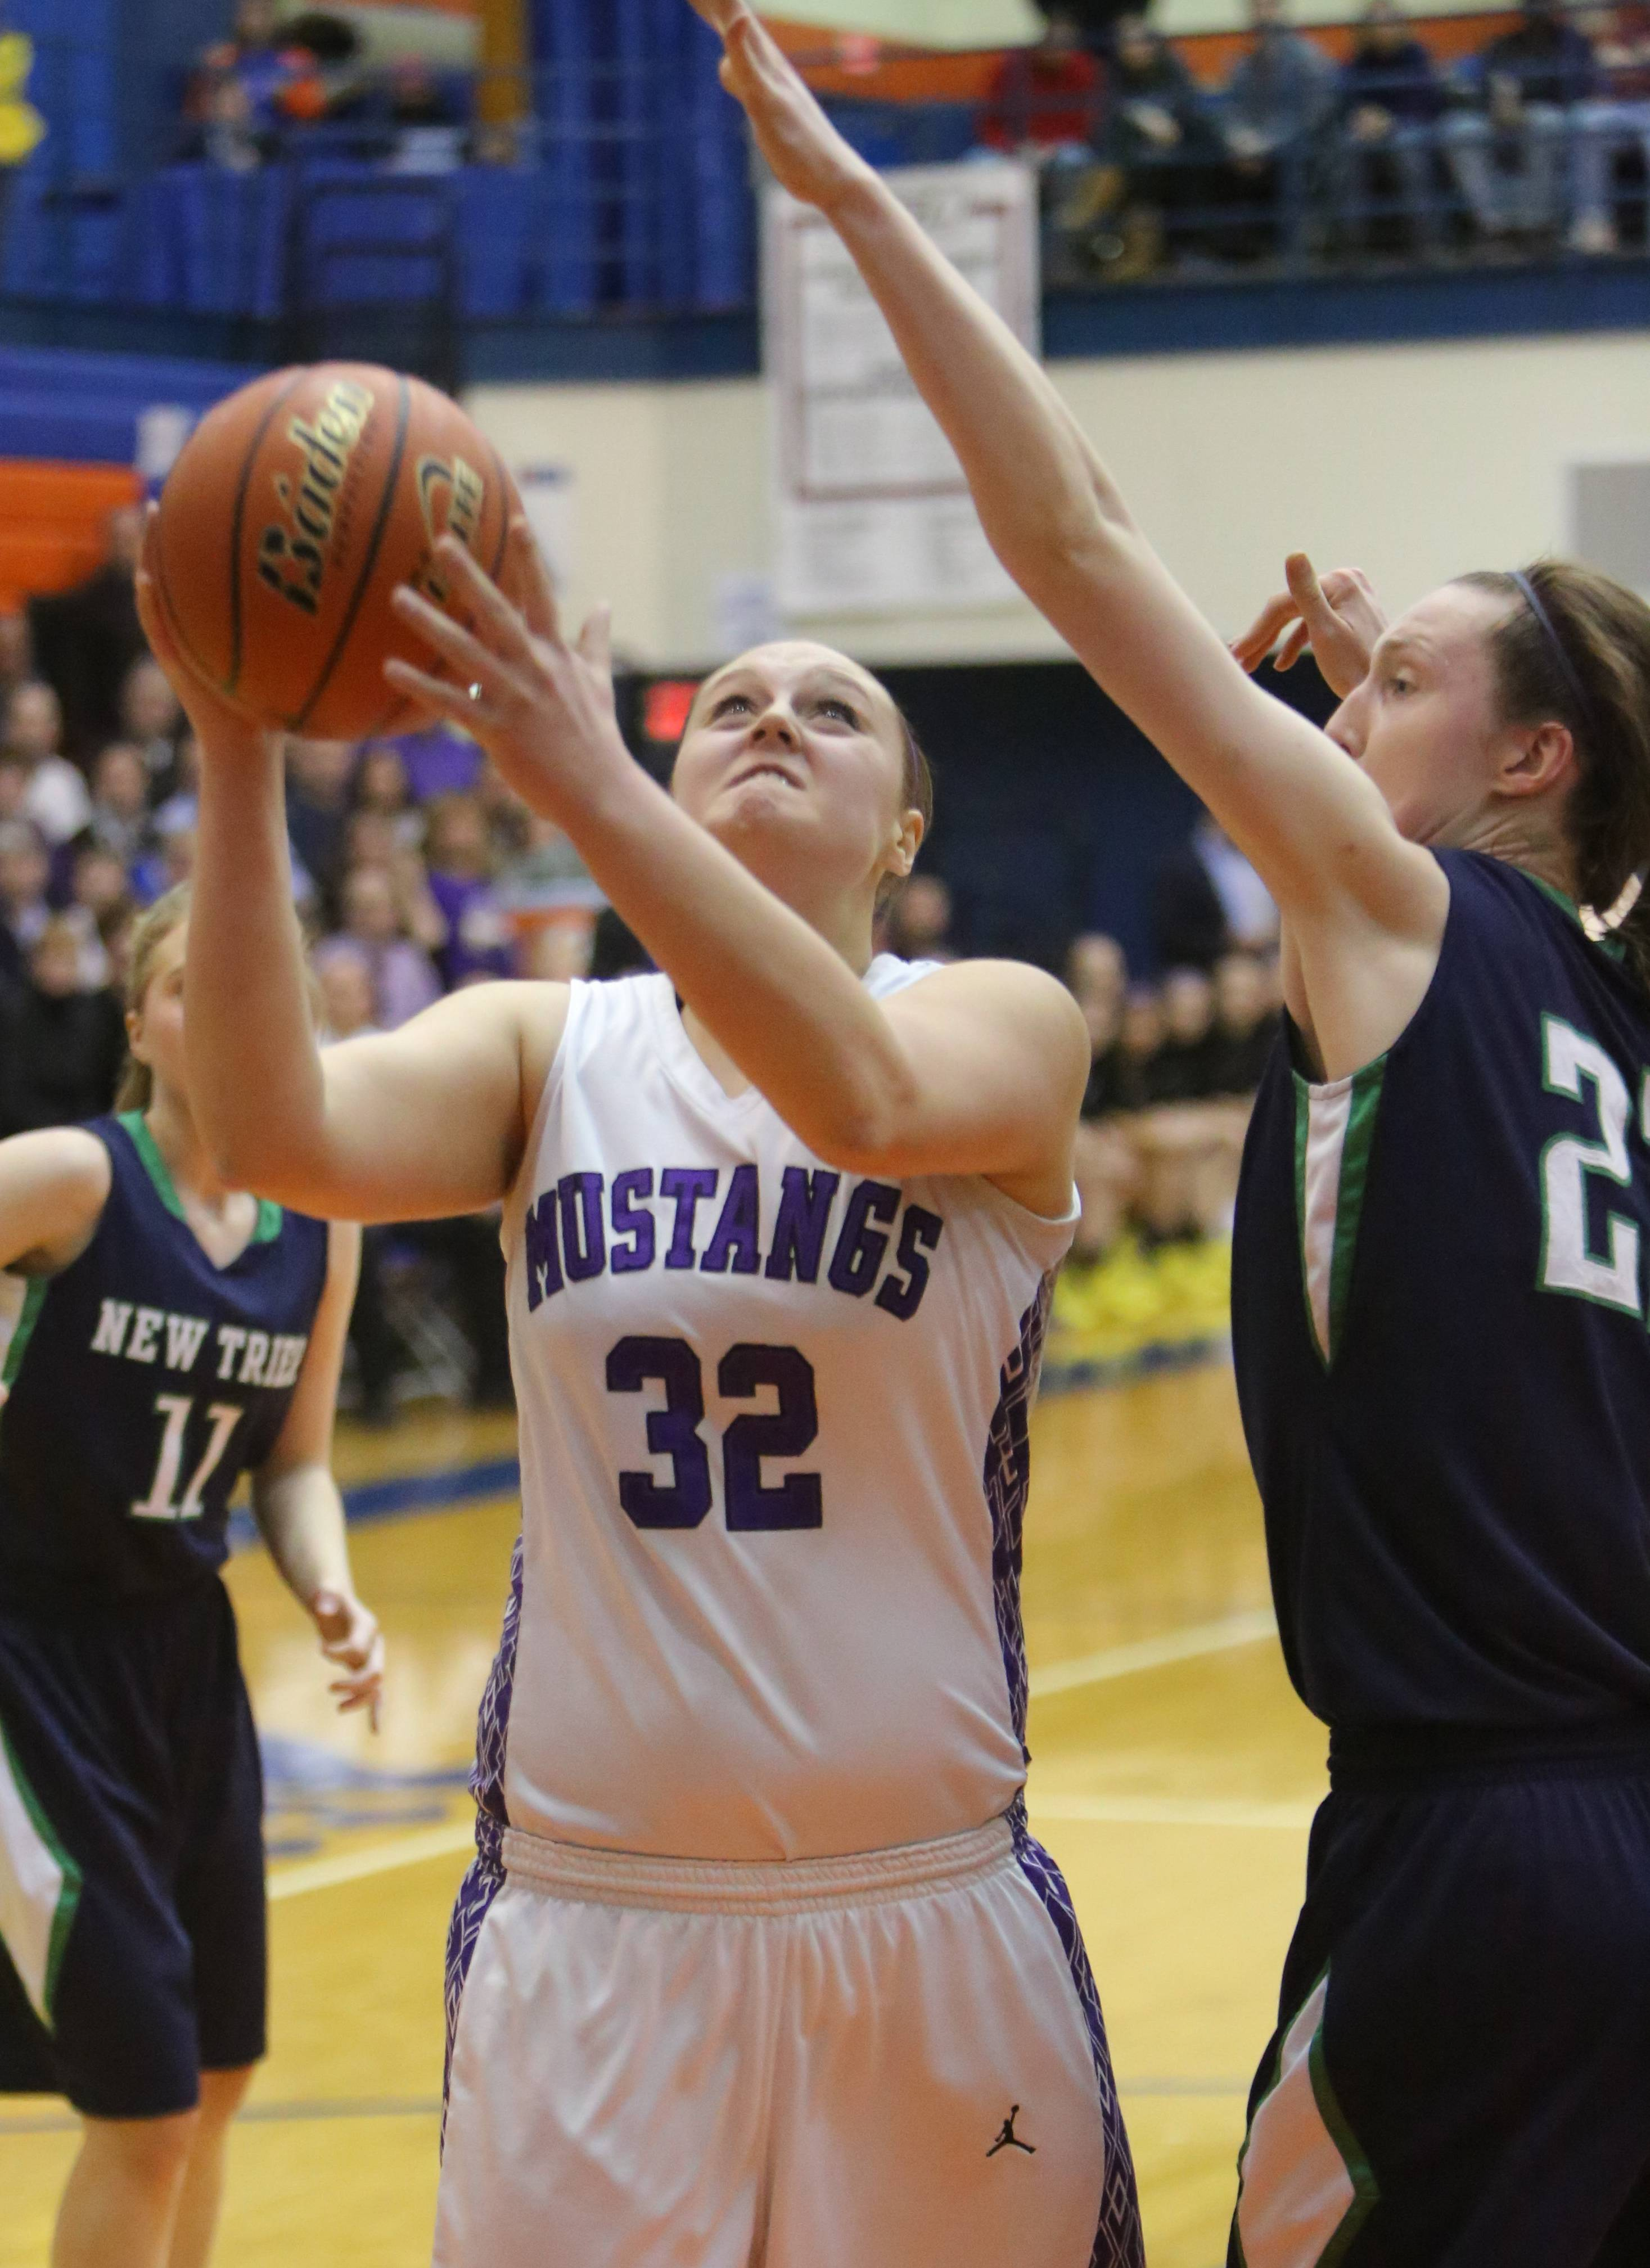 Images from the Rolling Meadows vs. New Trier girls basketball game on Monday, March 3 in Hoffman Estates.